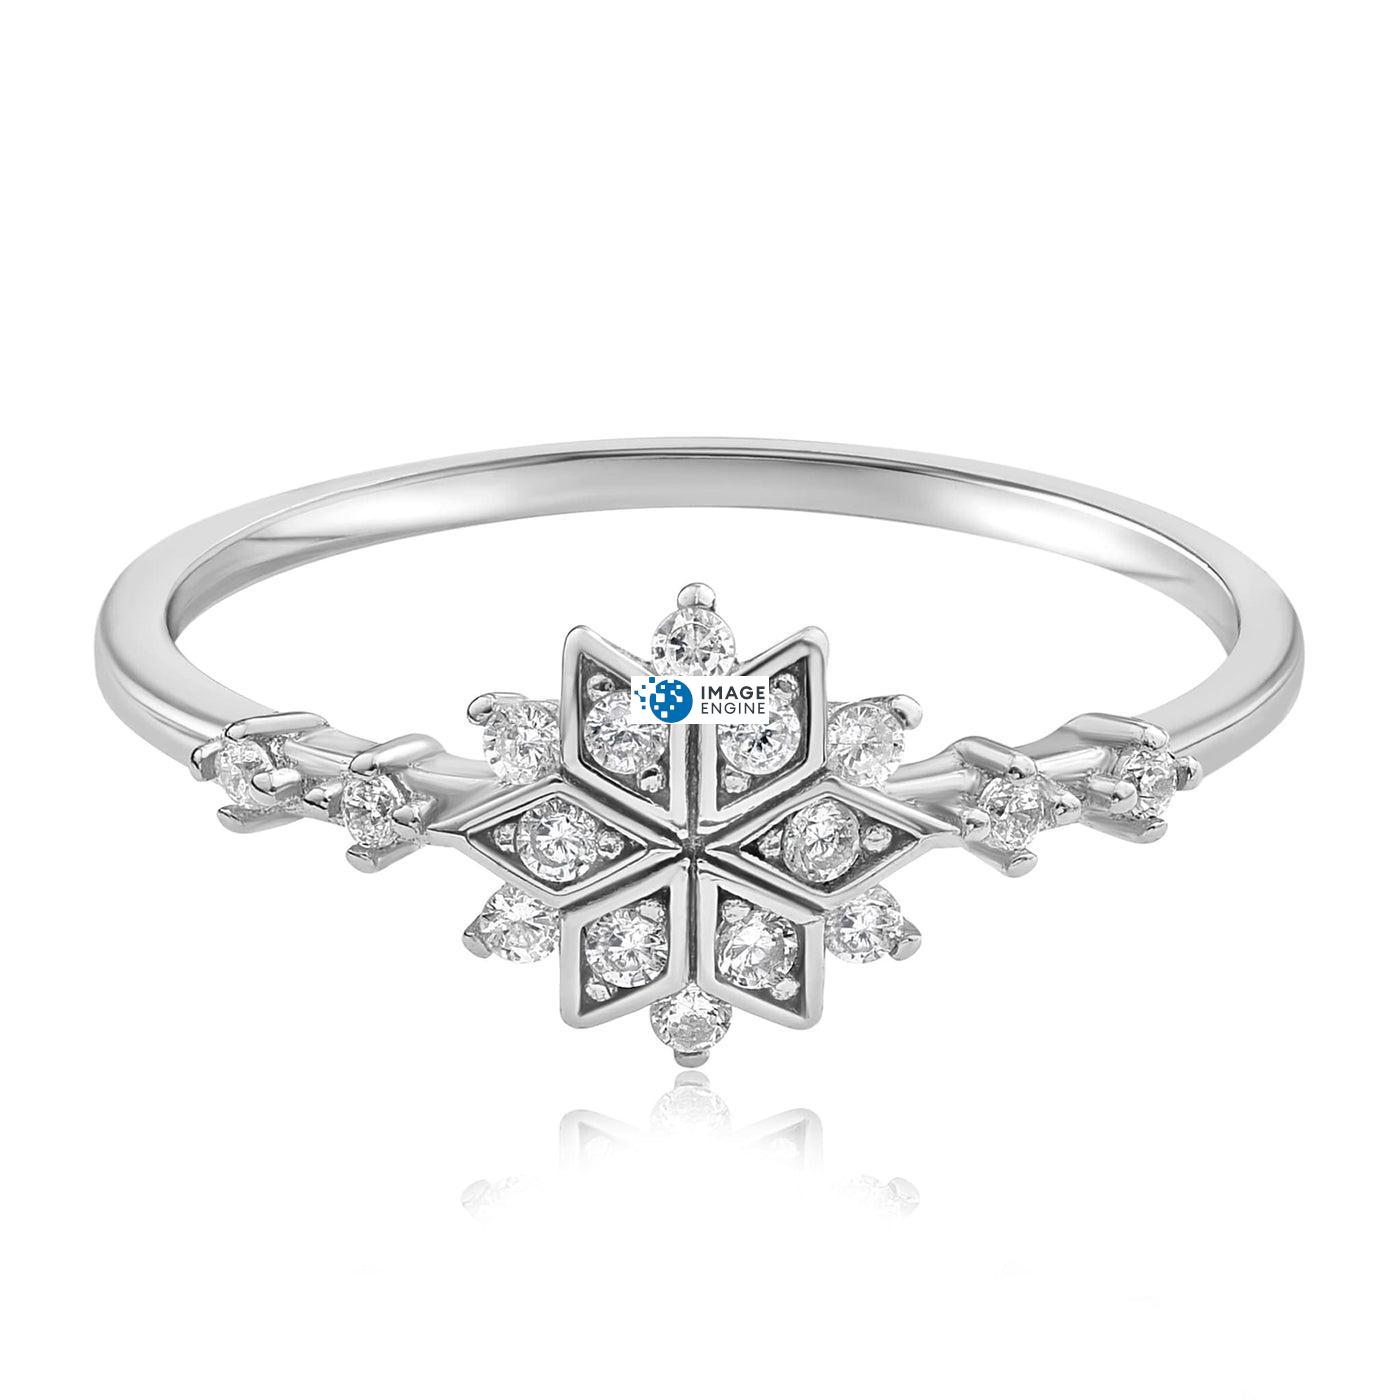 Sophia Snowflake Ring - Front View Facing Down - 925 Sterling Silver